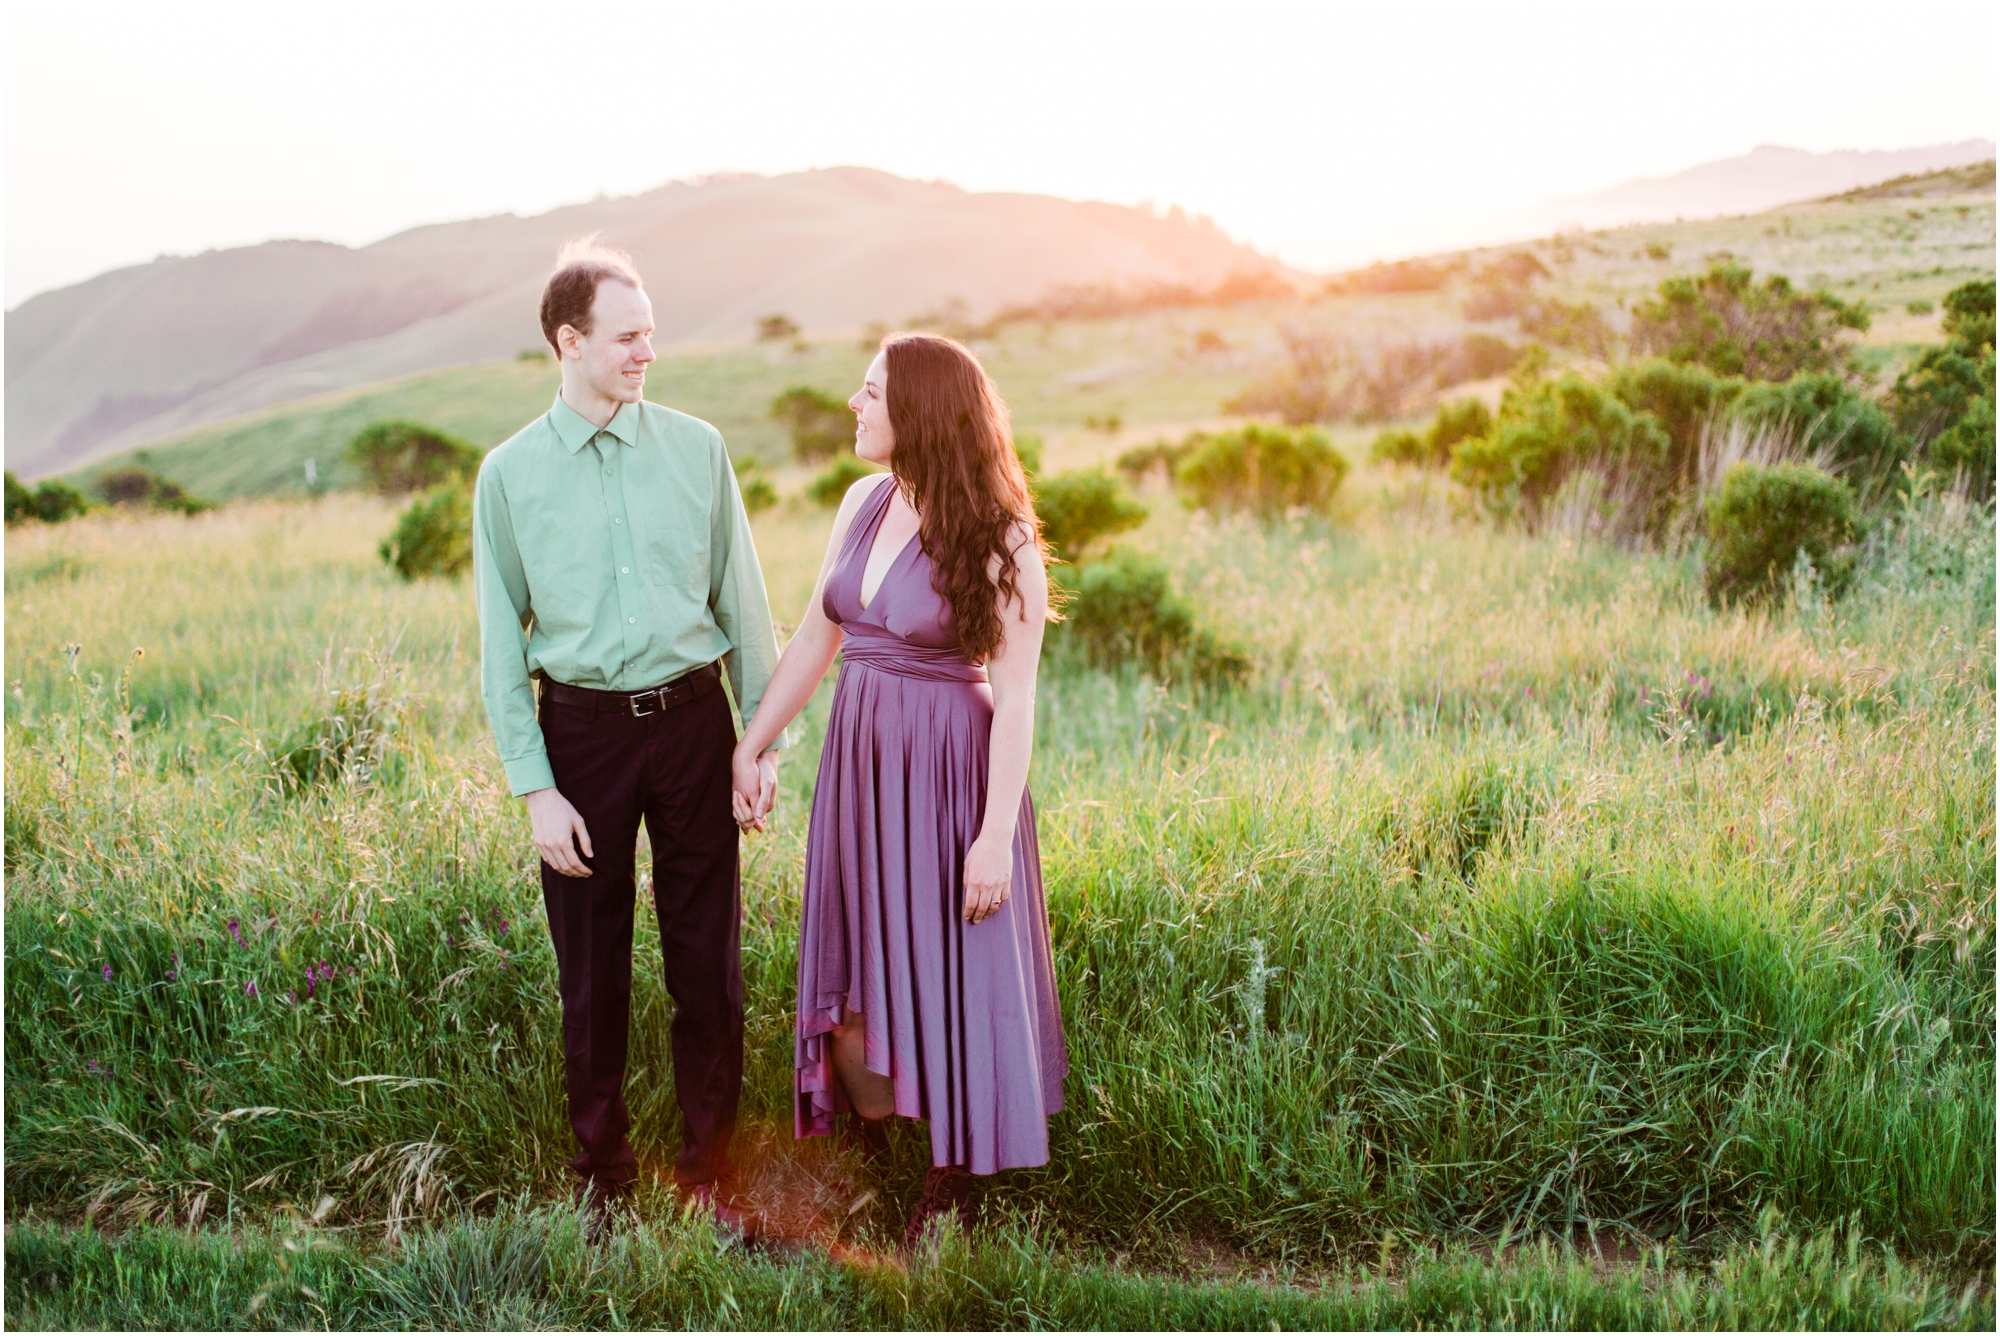 Russian Ridge engagement pictures by Briana Calderon Photography_1630.jpg